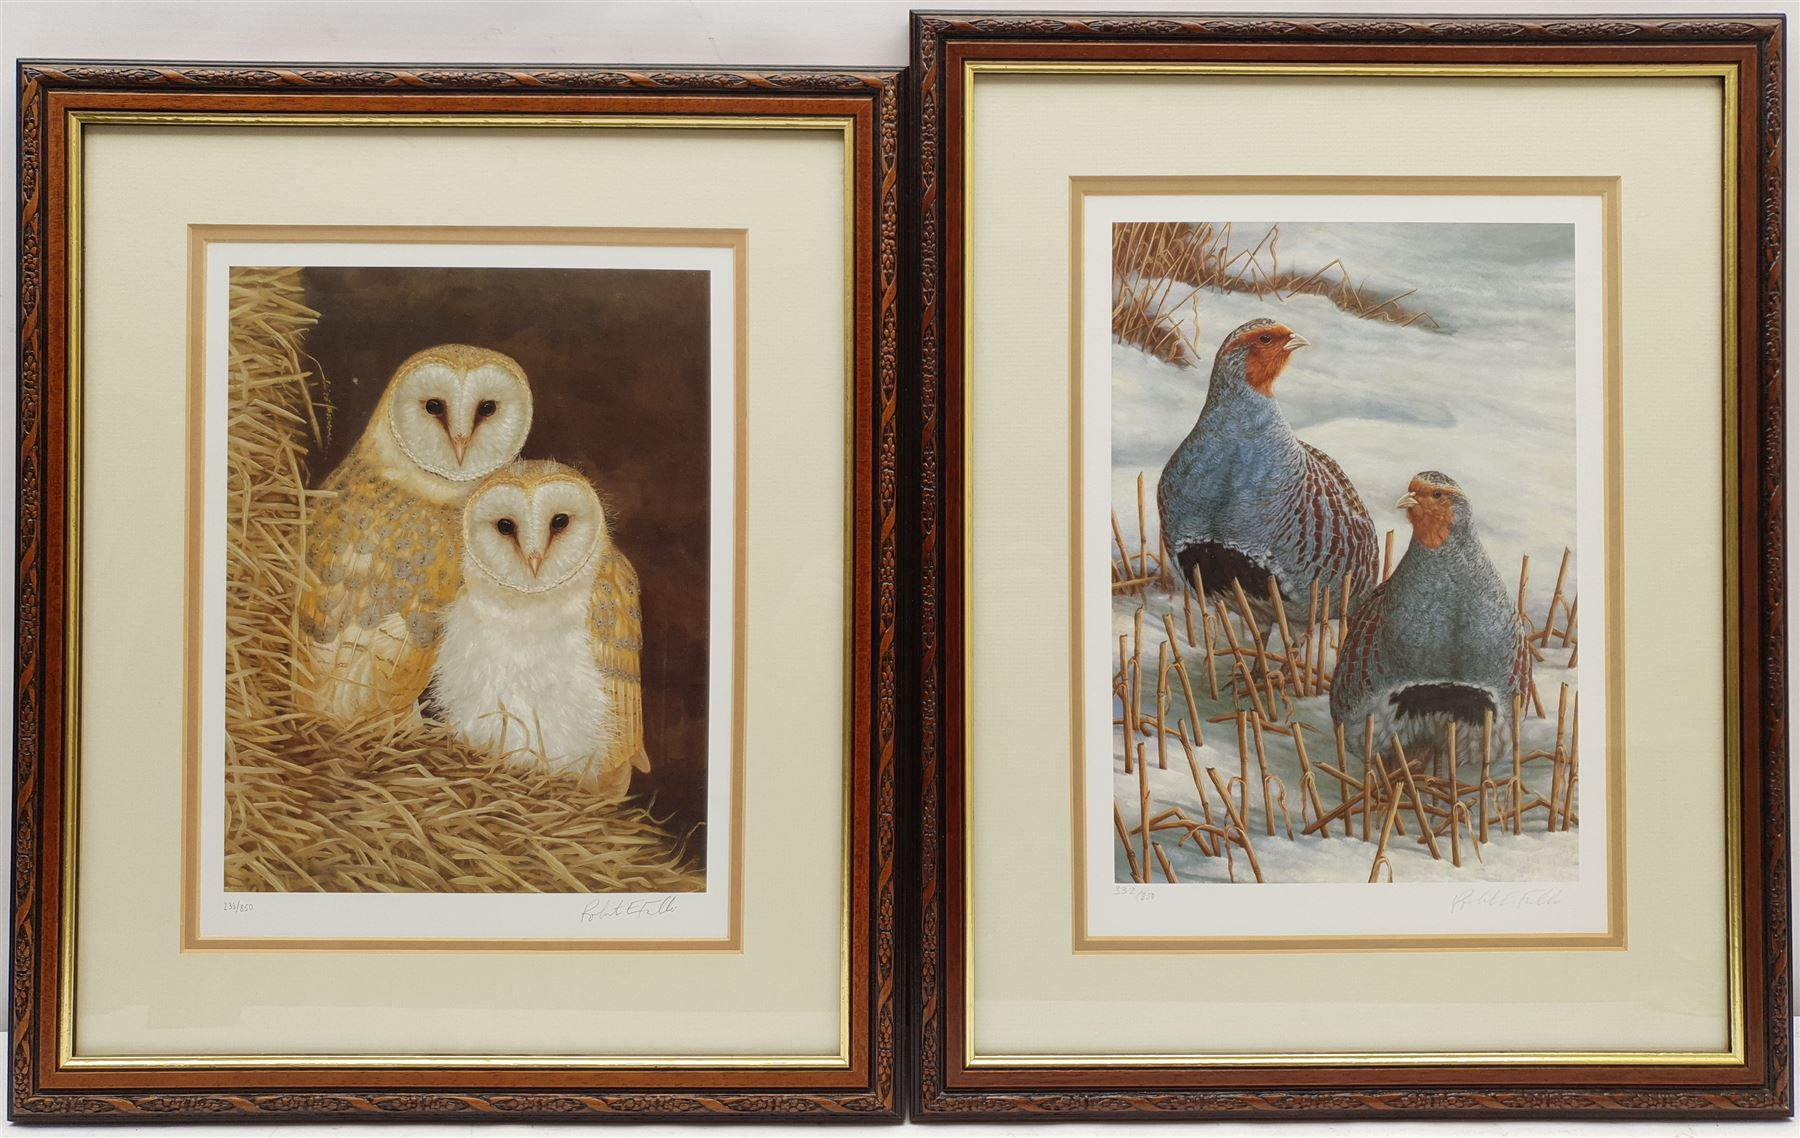 Robert E Fuller (British 1972-): 'Owls Snuggled Up' and 'Greys on Winter Stubble' - Image 2 of 2